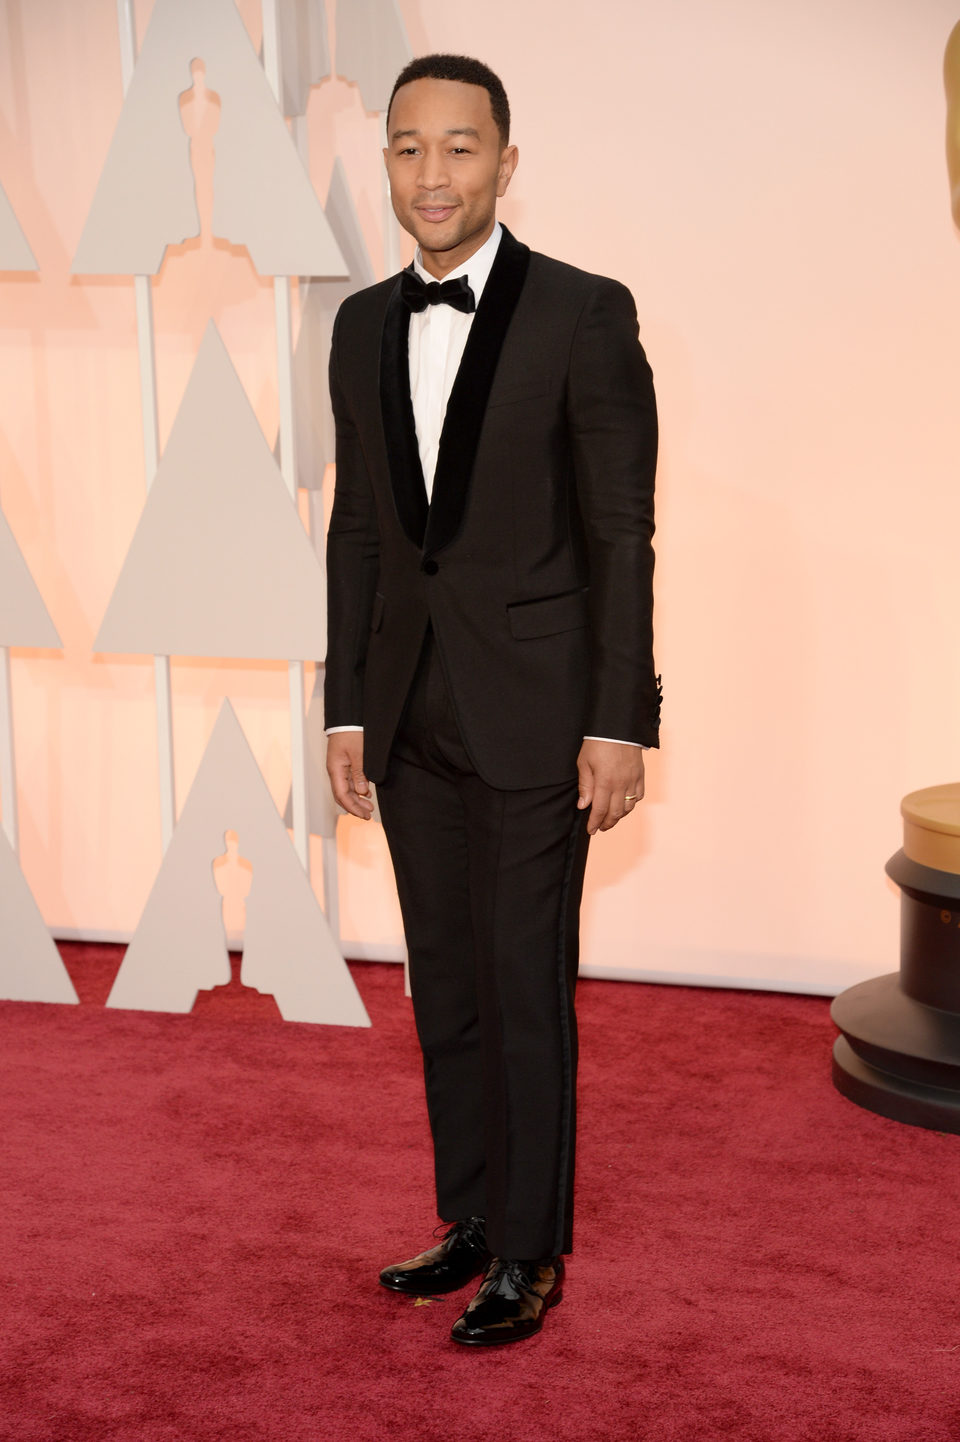 John Legend pose at the red carpet of the Oscar 2015